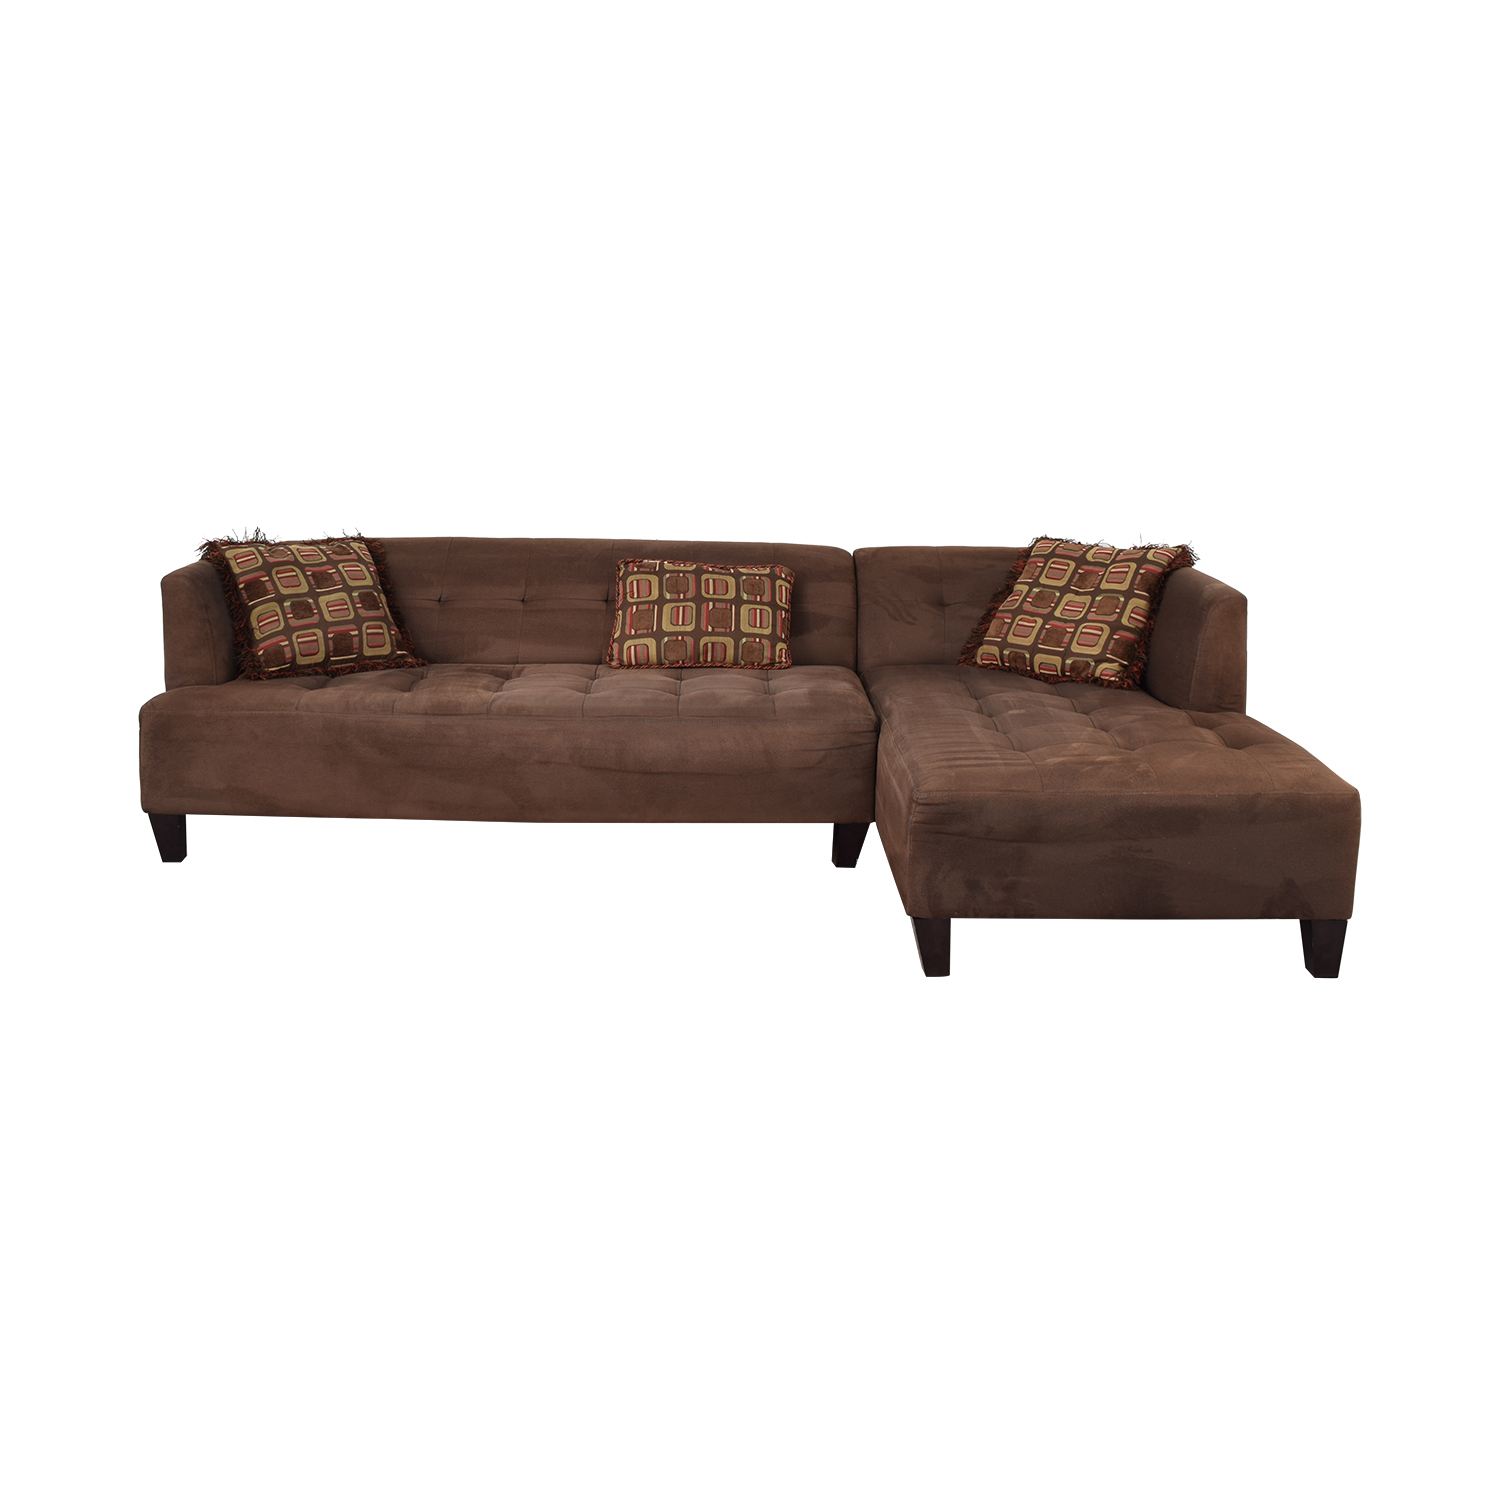 Macy's Macy's Brown Tufted Chaise  Sectional price